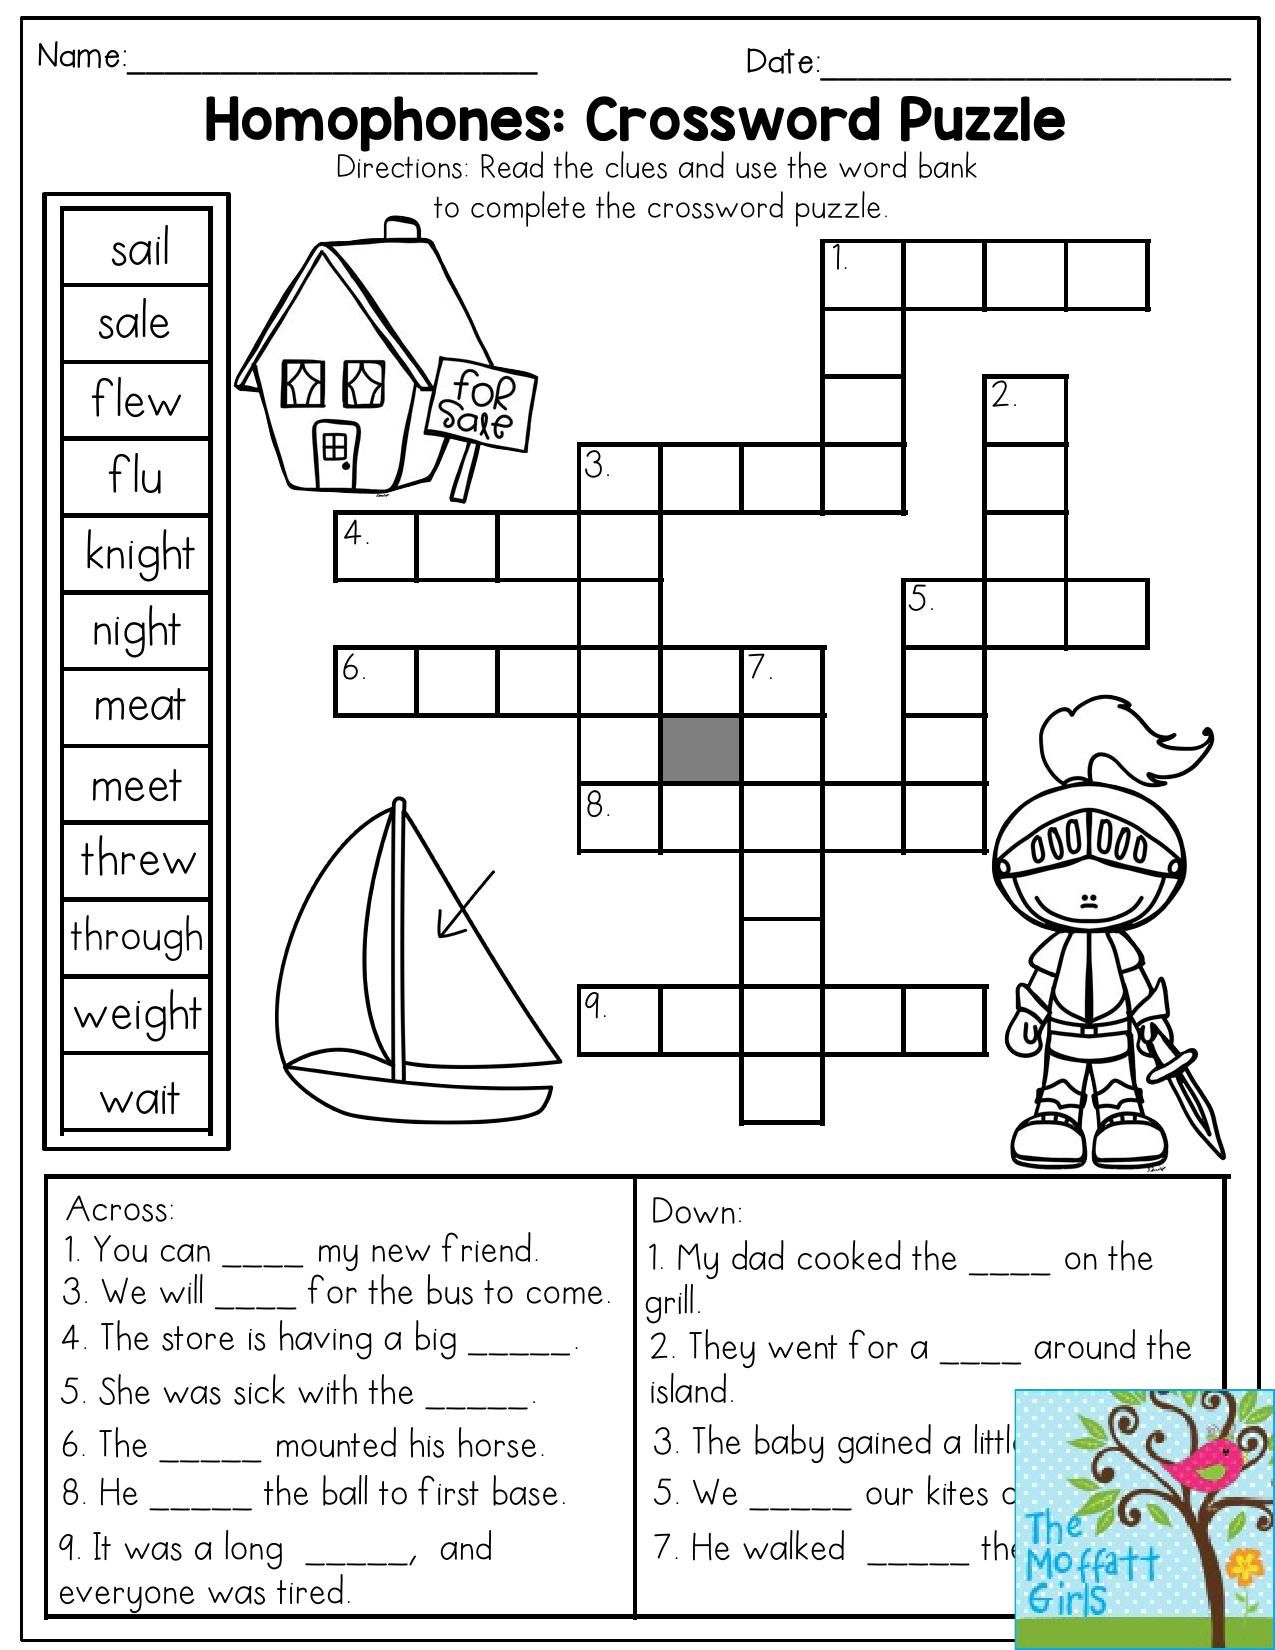 Homophones worksheets for grade 3 pdf